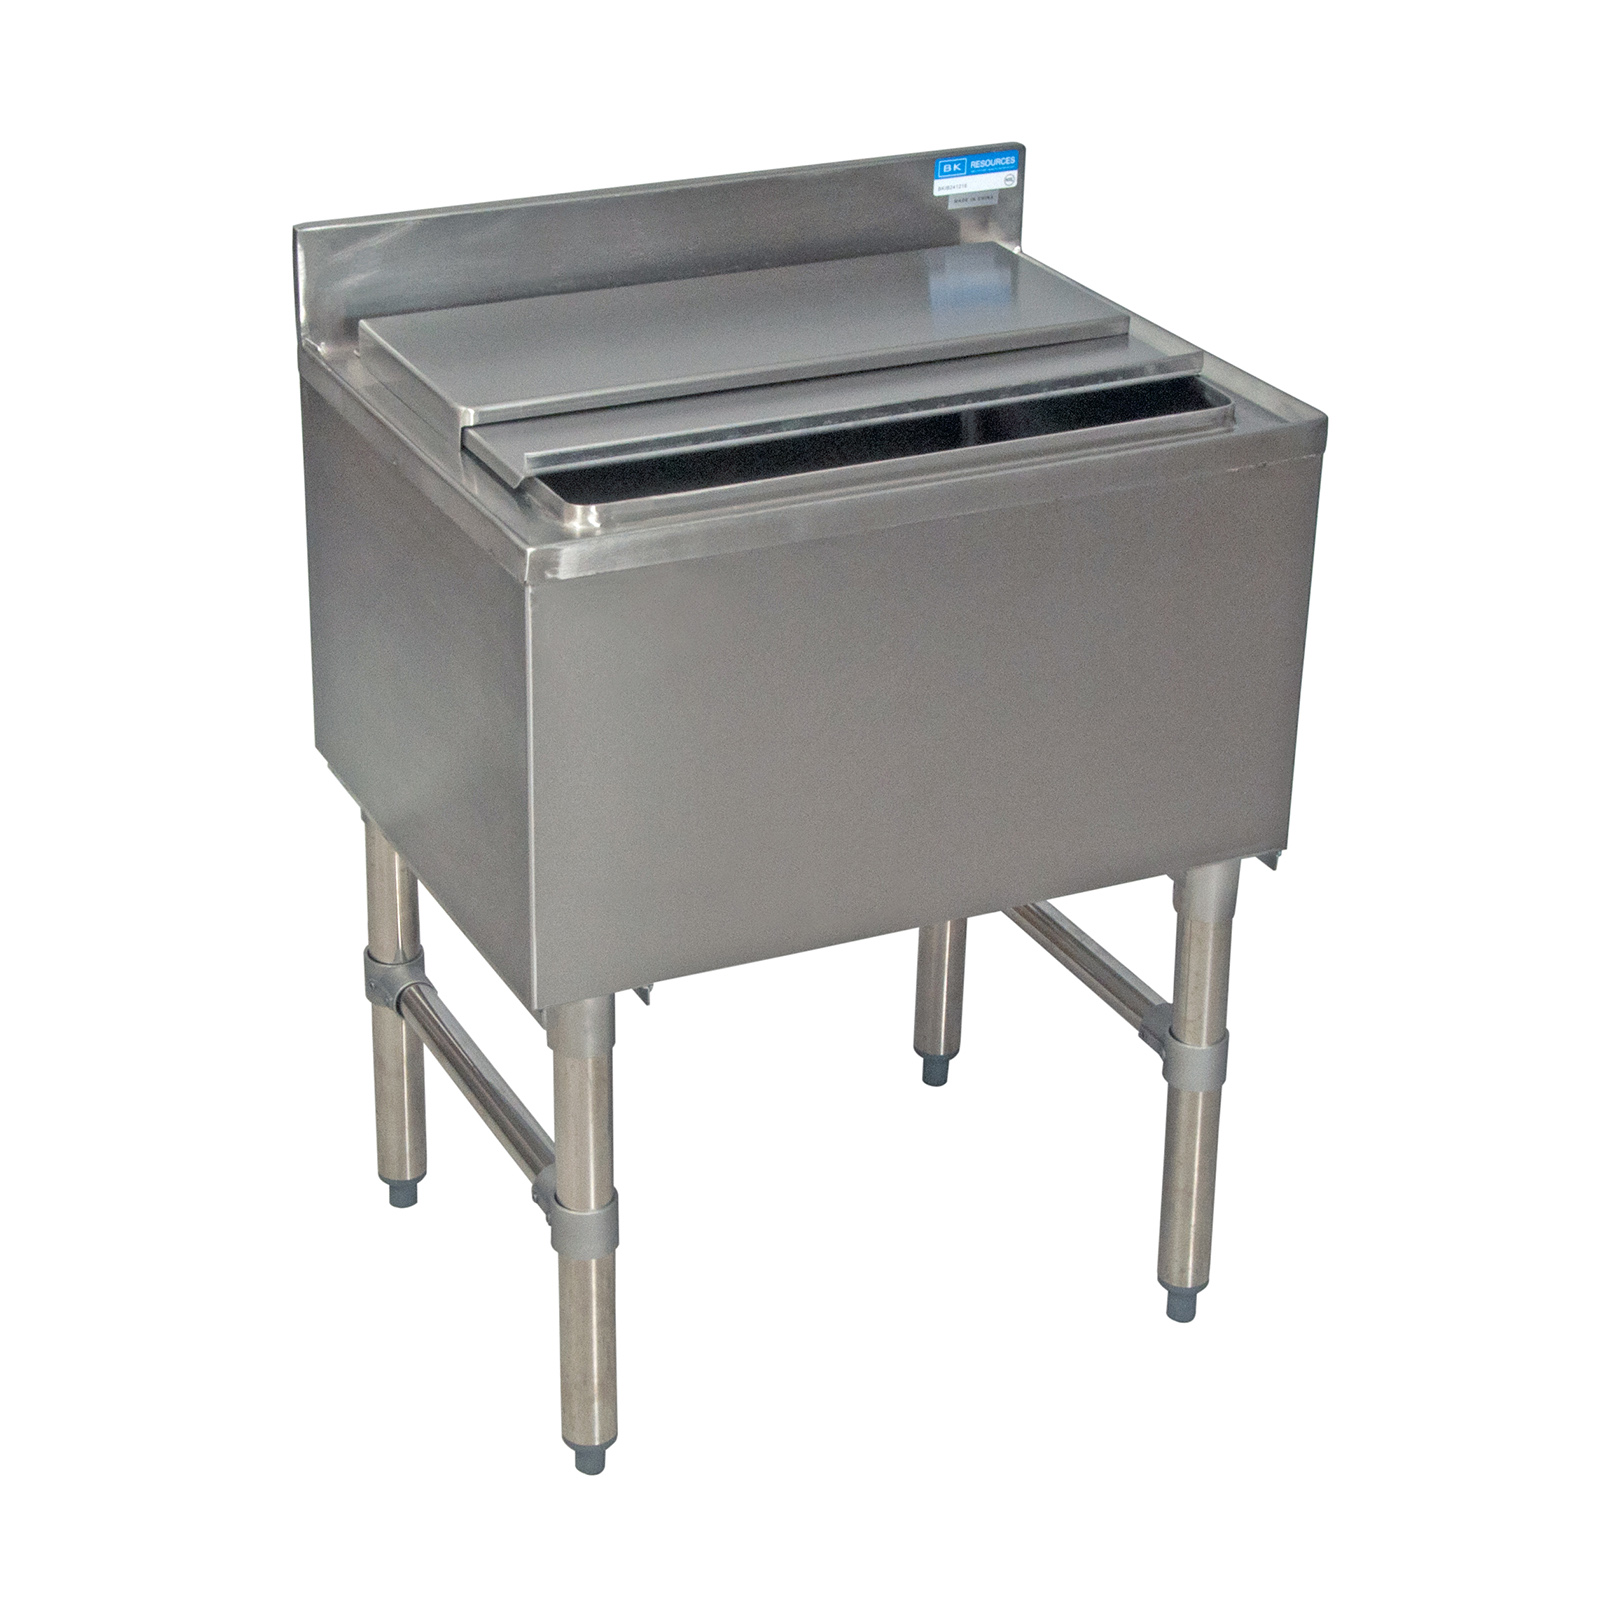 BK Resources BKIB-2412-18S underbar ice bin/cocktail unit